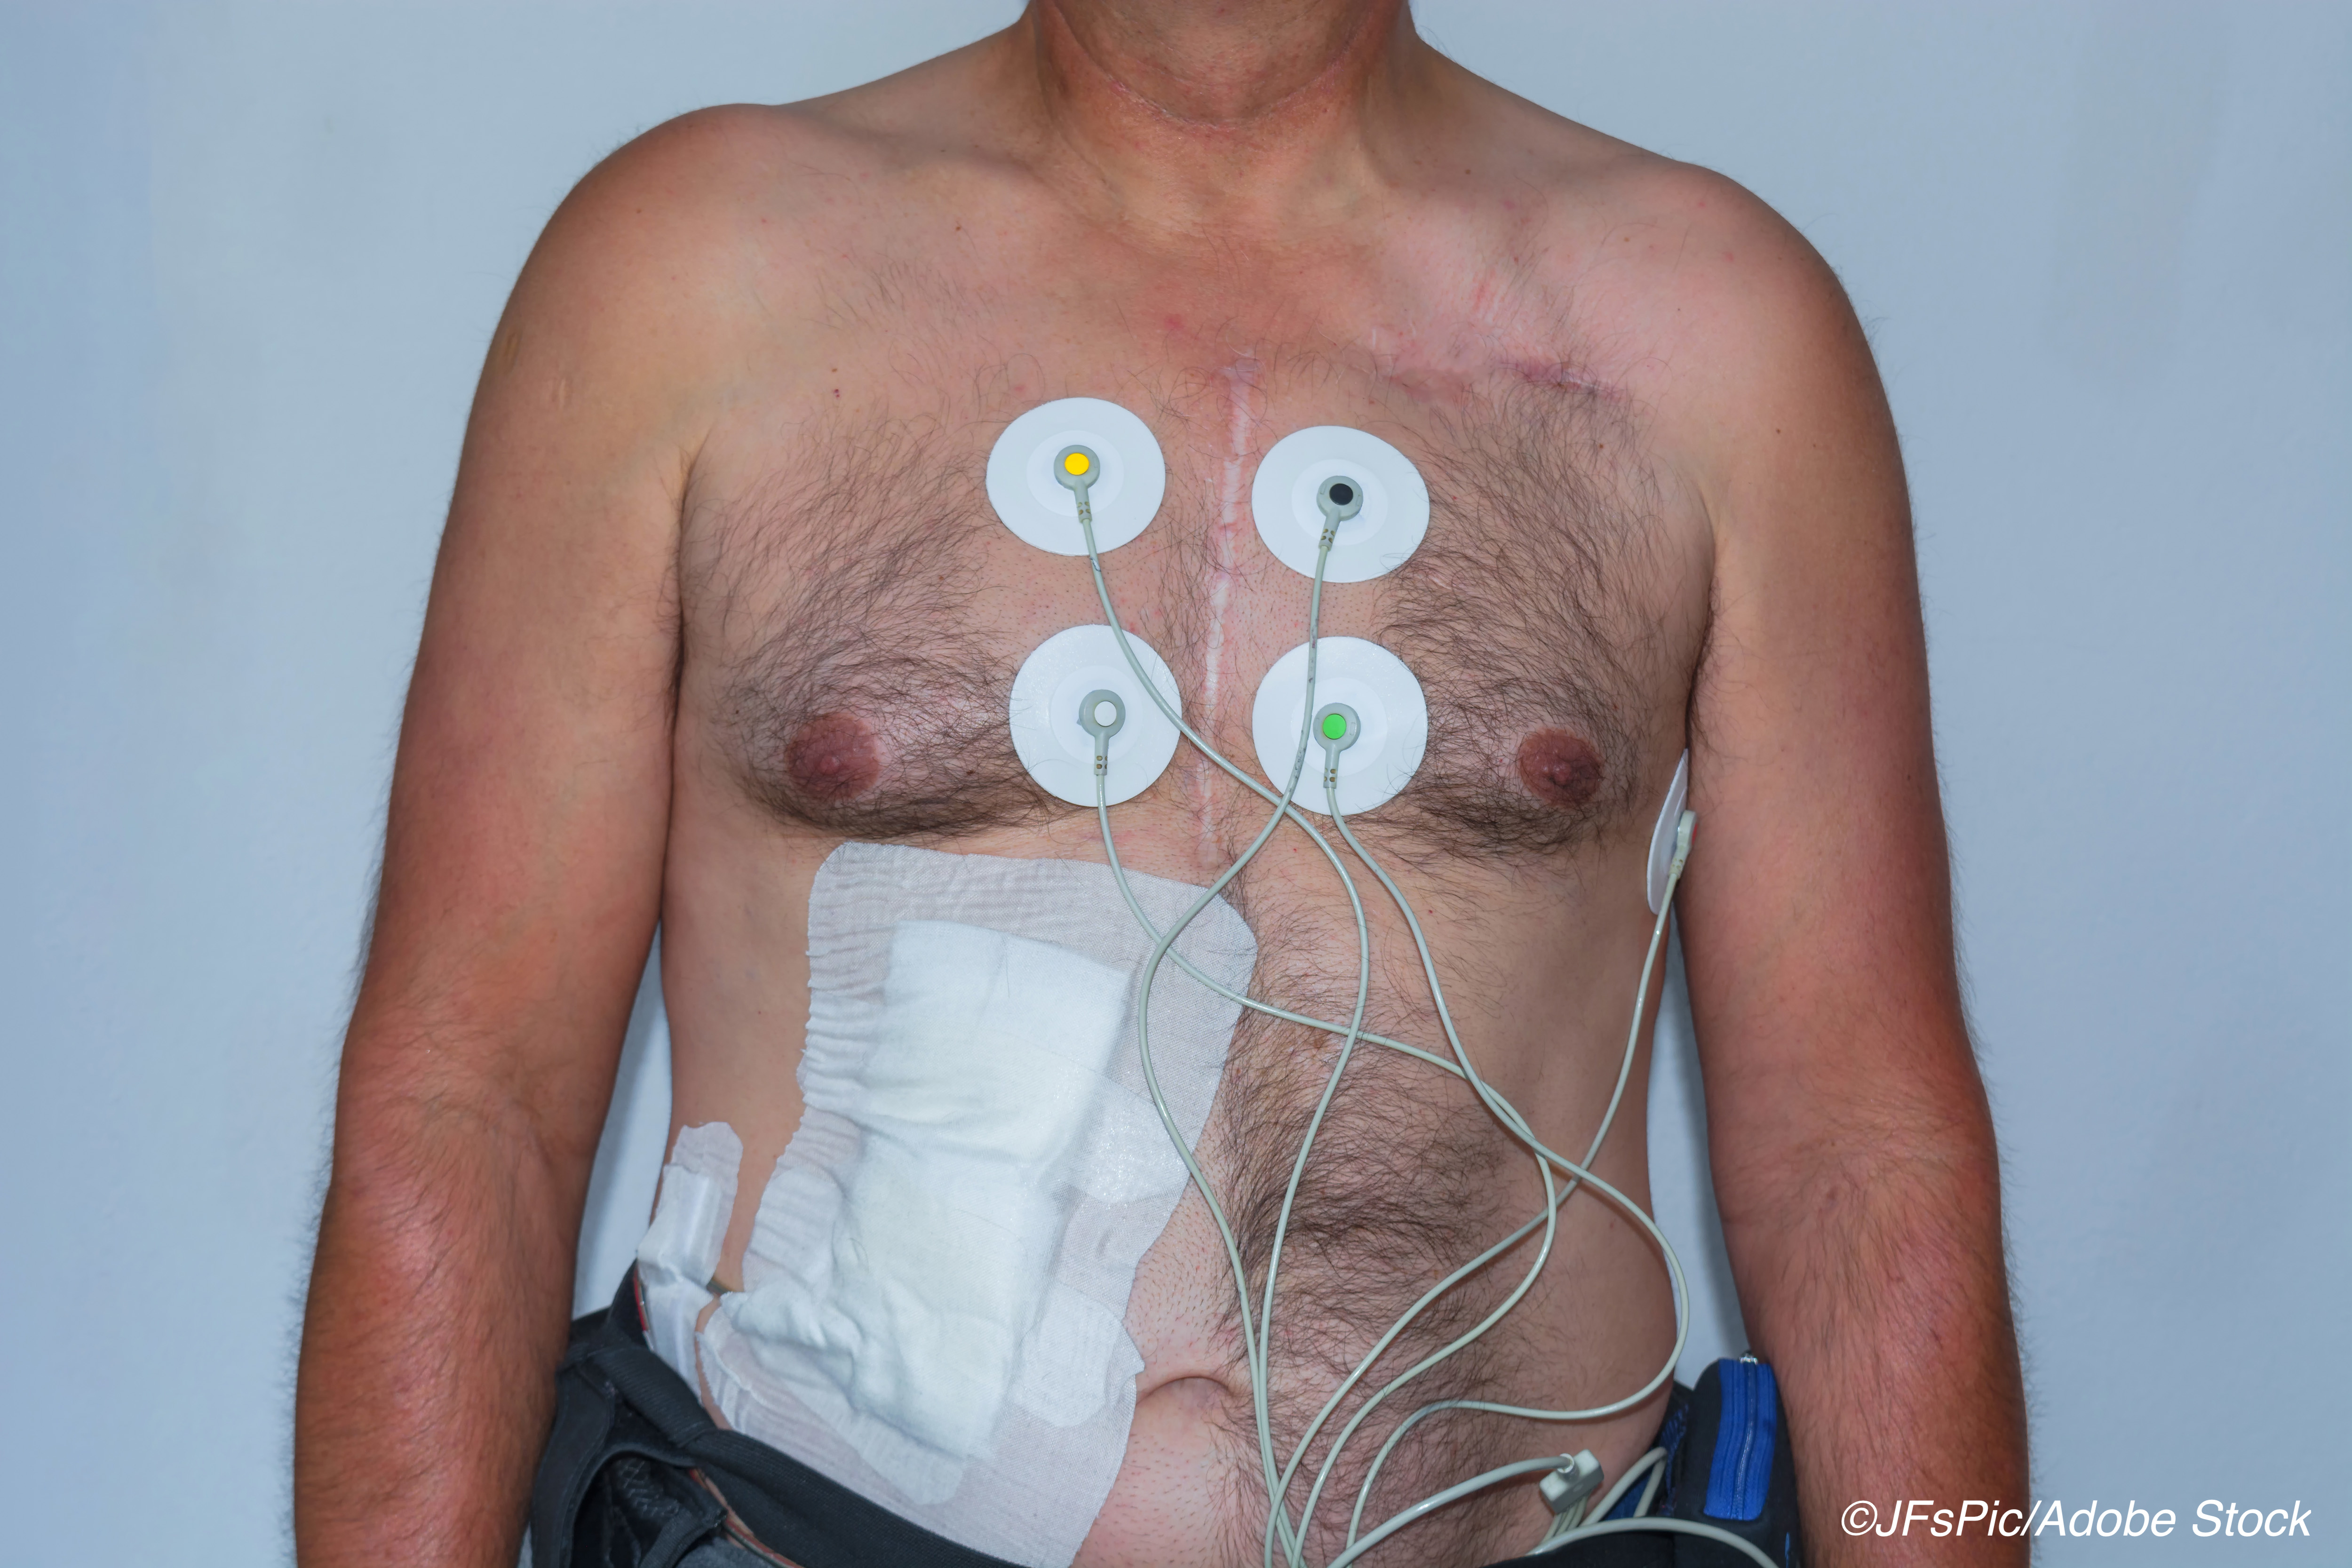 Perioperative MACE Common in LVAD Patients Undergoing Noncardiac Surgery